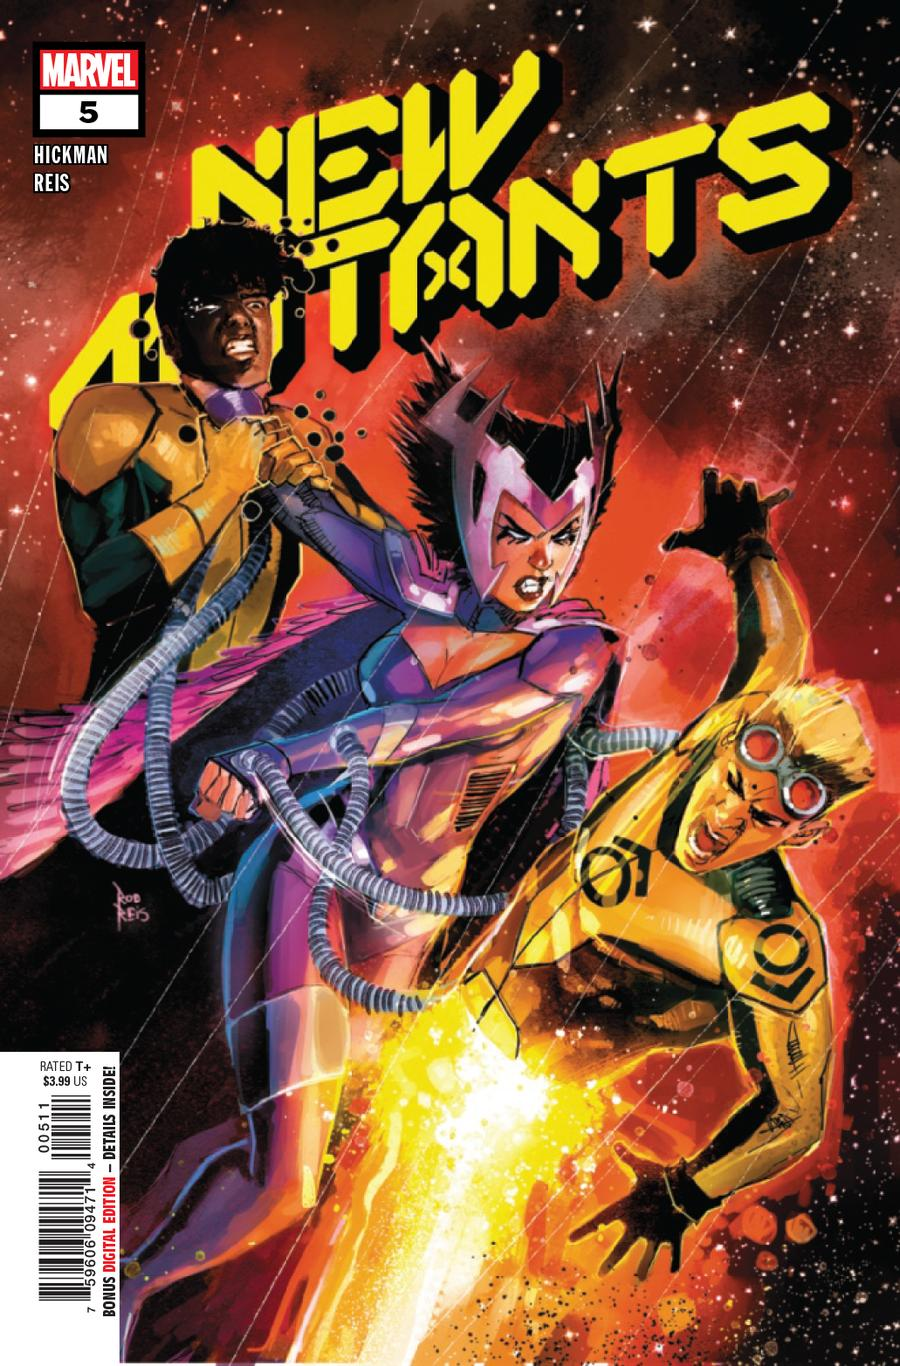 New Mutants Vol 4 #5 Cover A Regular Rod Reis Cover (Dawn Of X Tie-In)